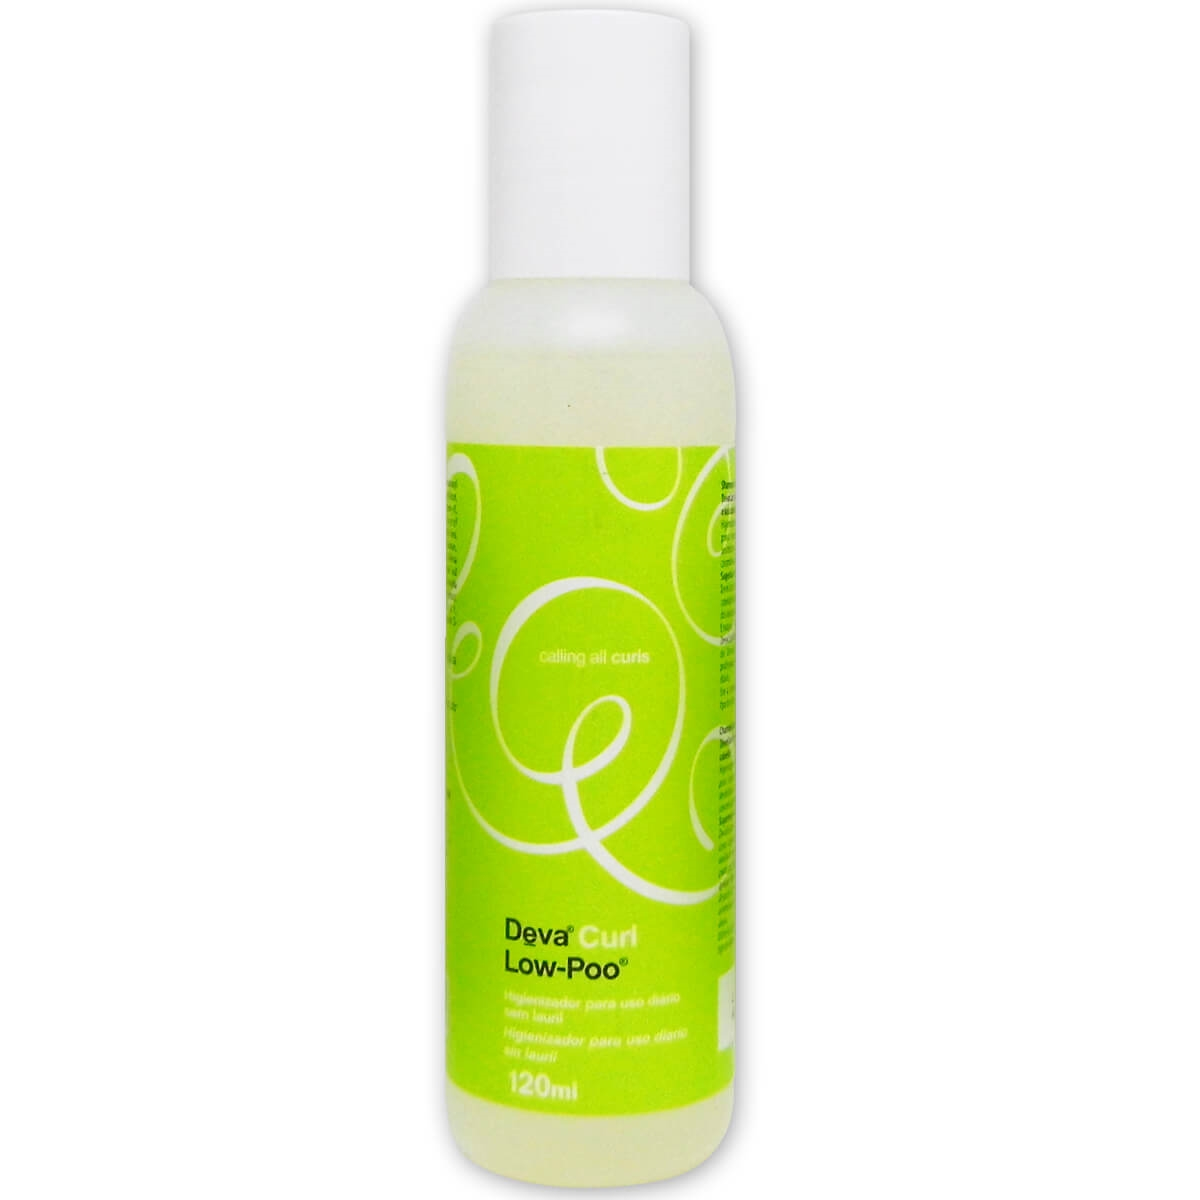 Shampoo Deva Curl Low Poo 120ml